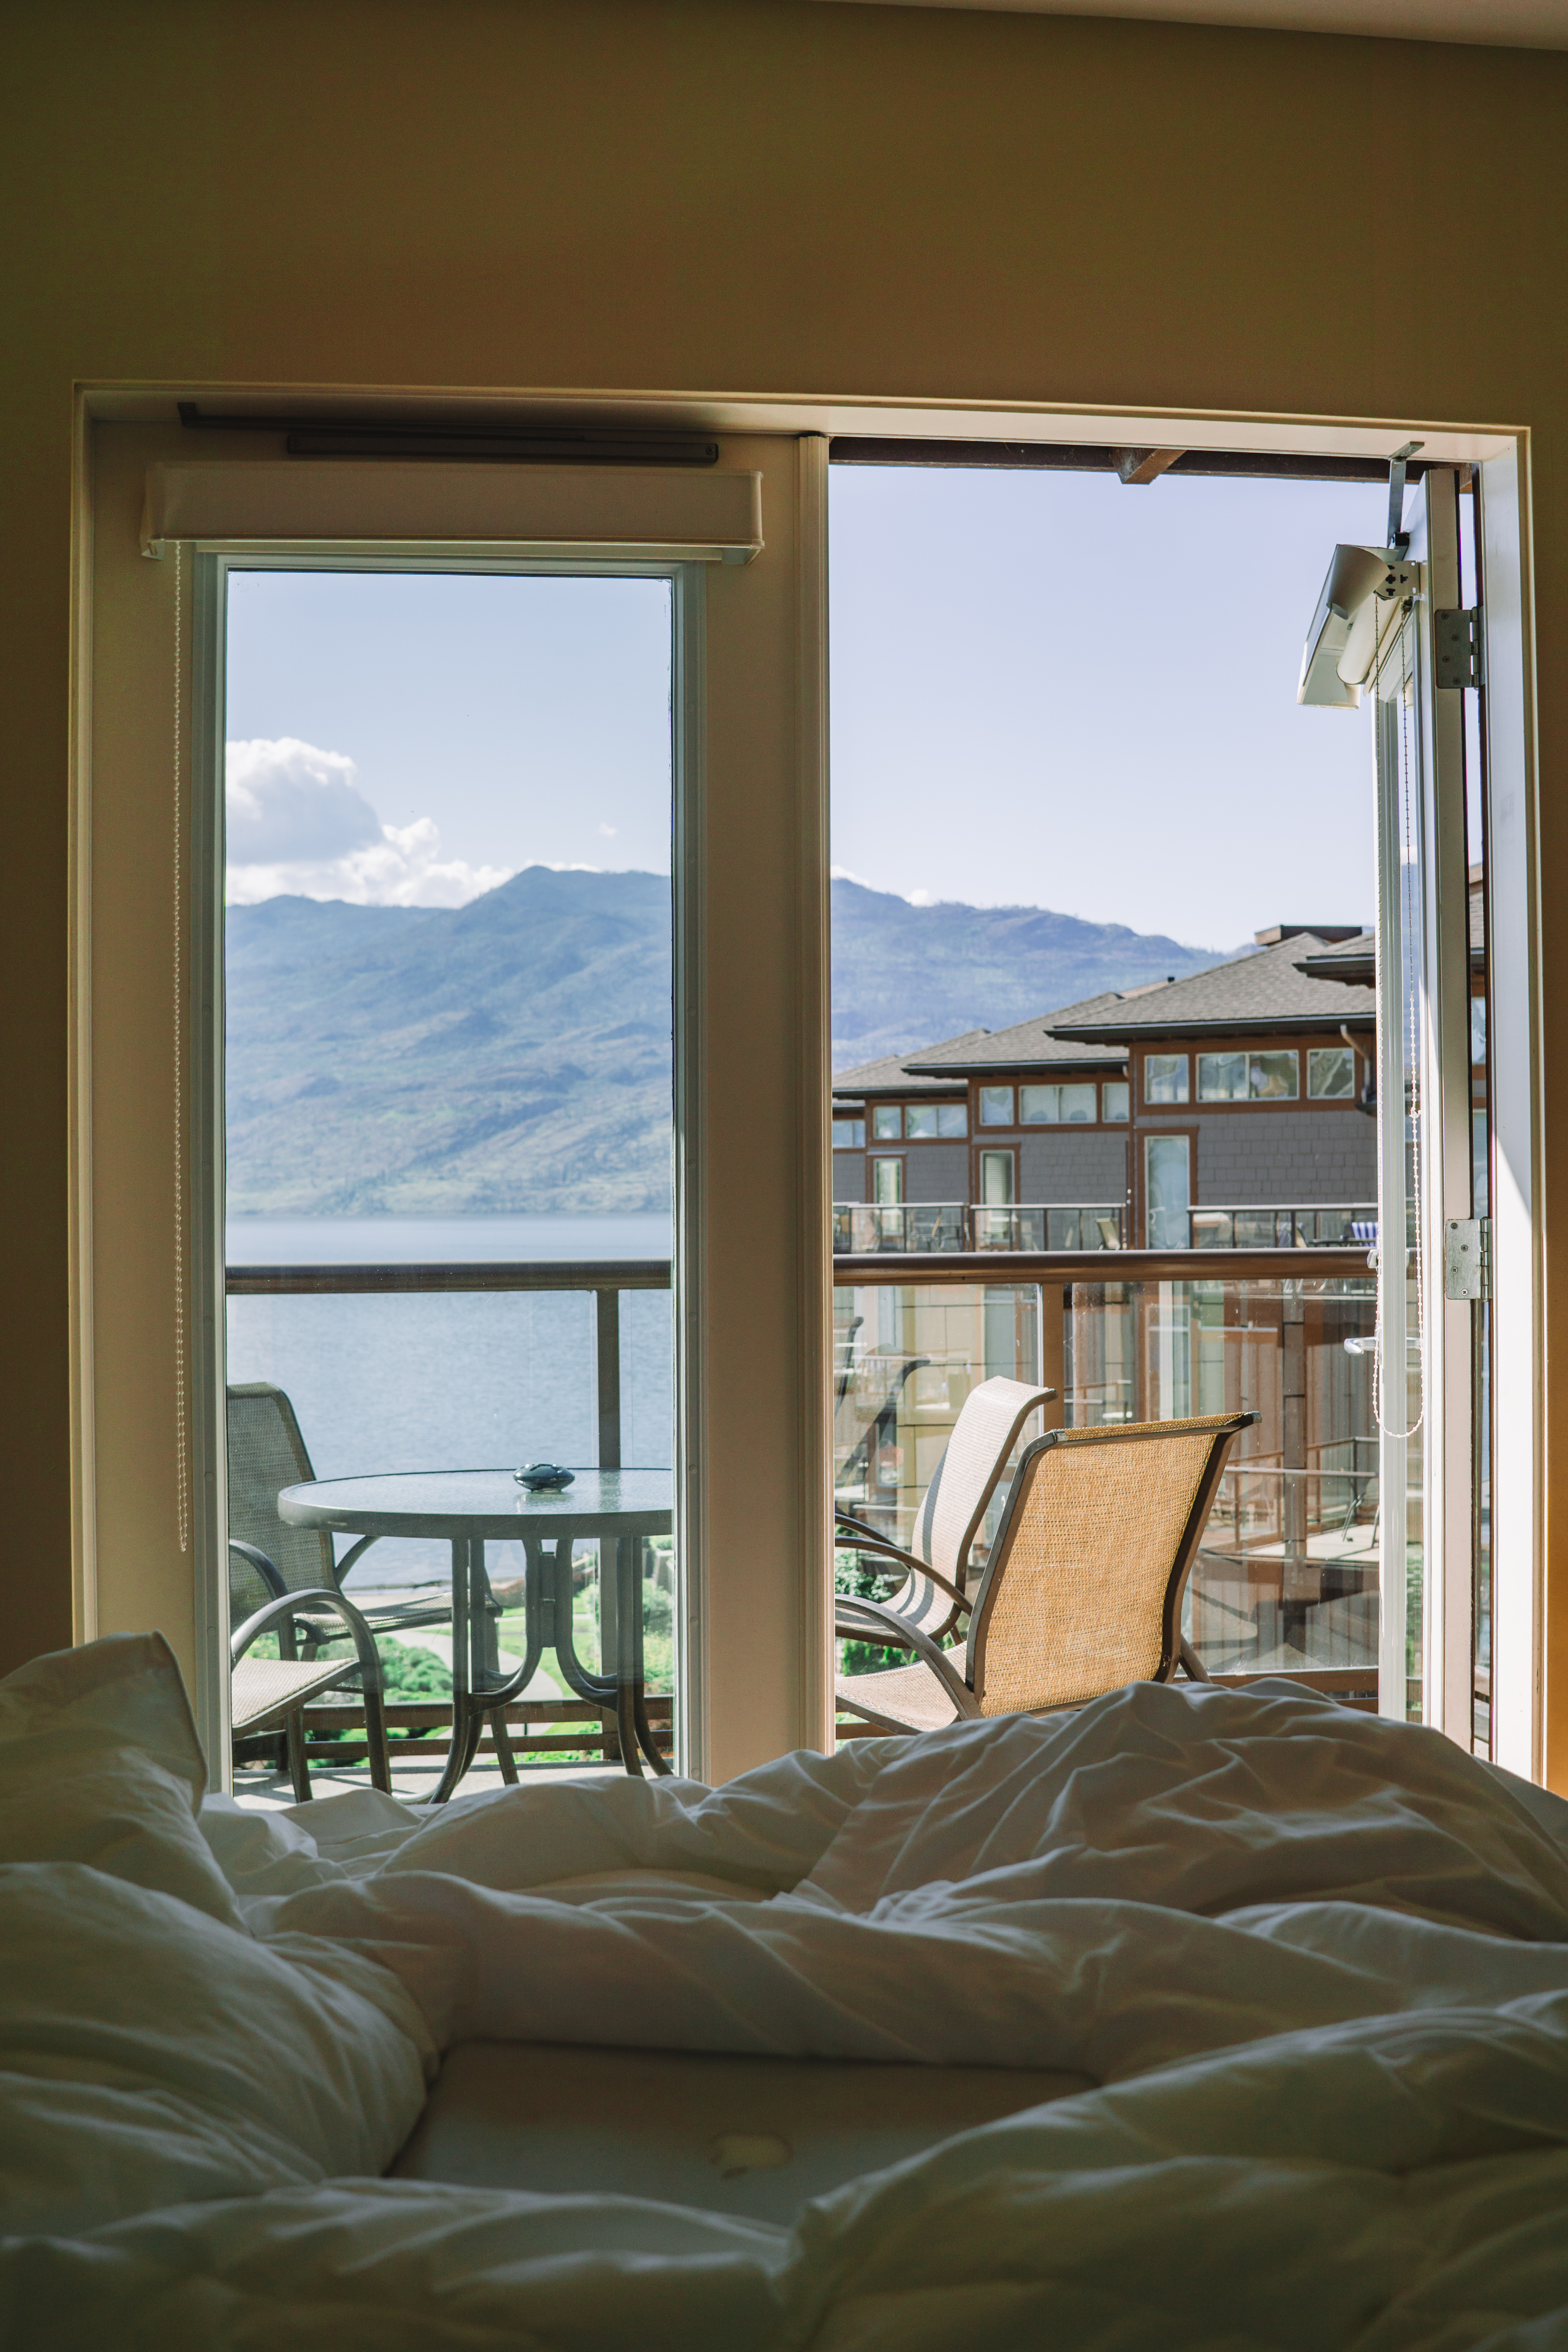 Waking up at the Cove Lakeside Resort